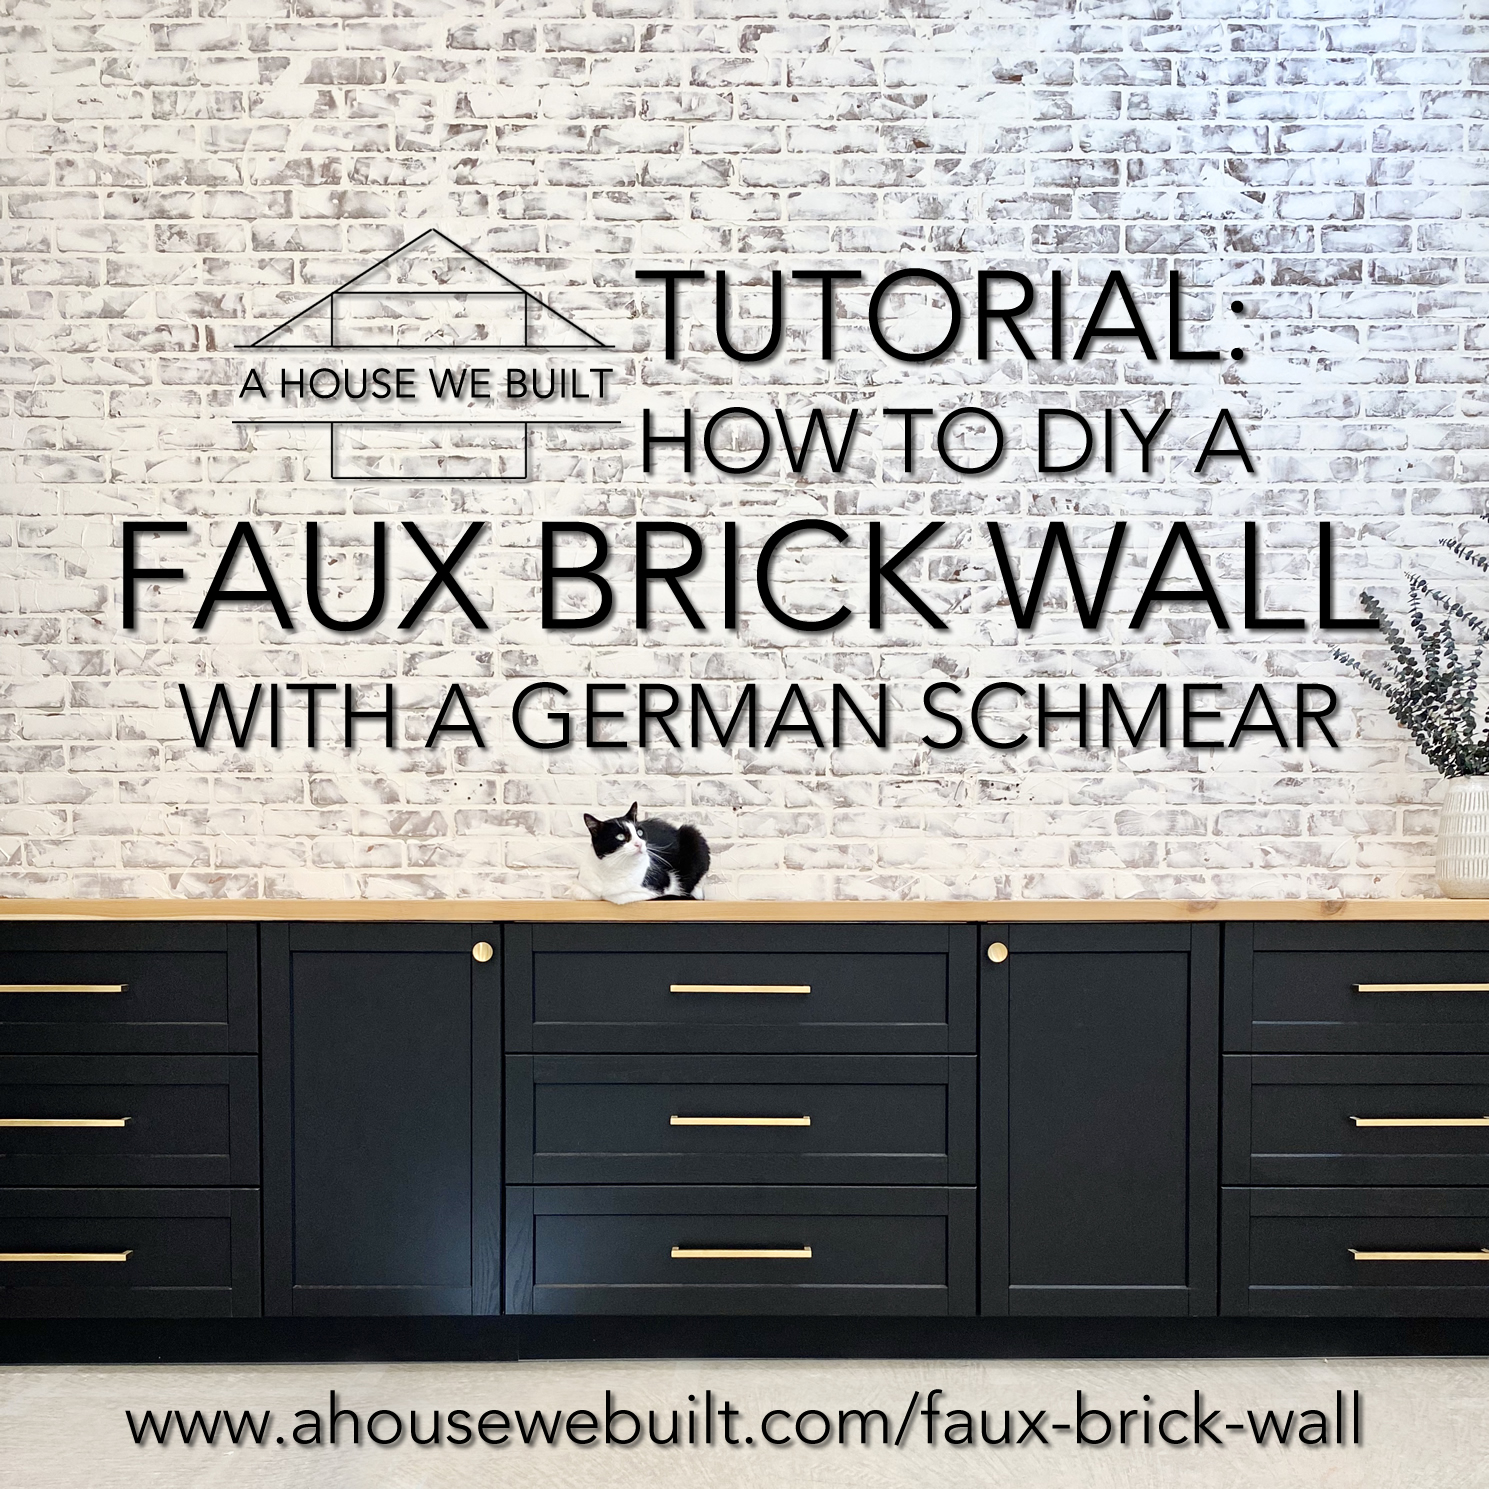 How To Diy A Faux Brick Wall With A German Schmear